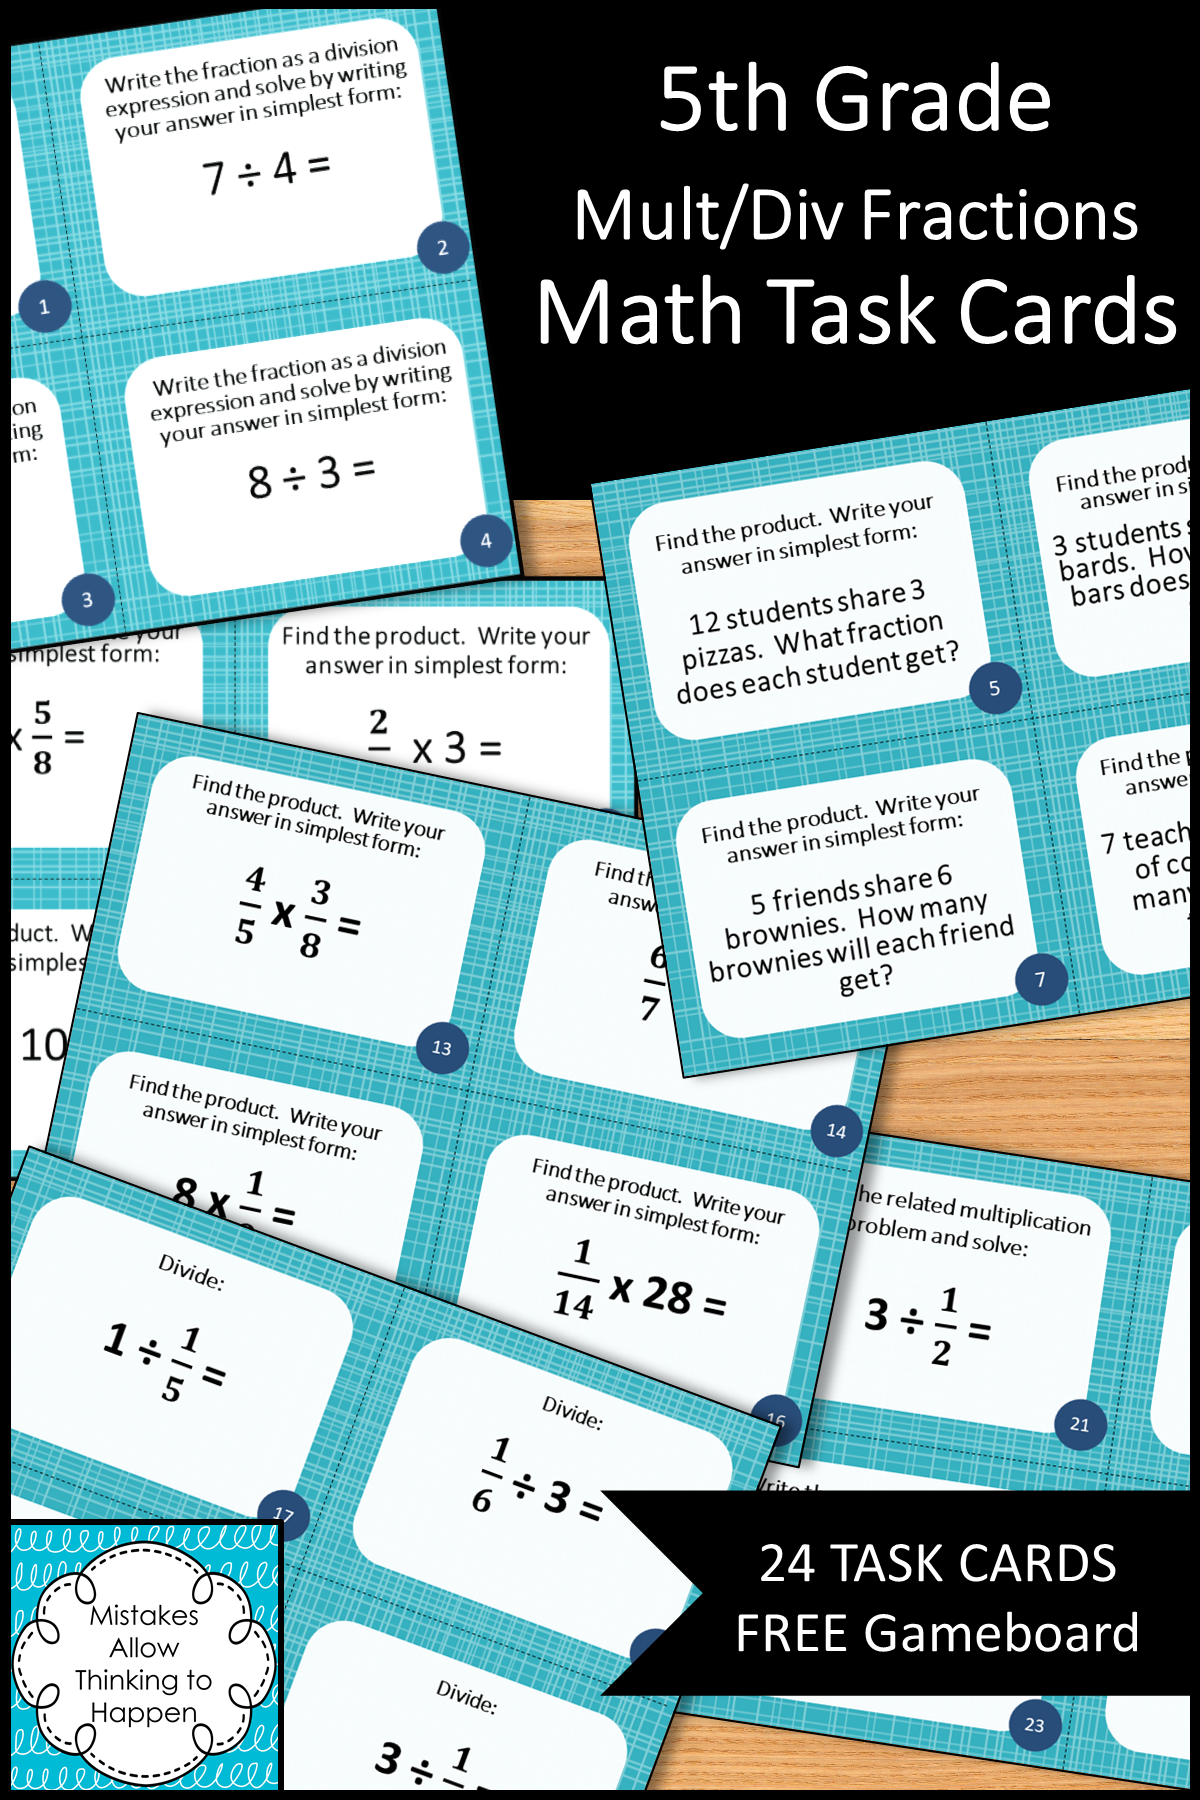 5th Grade Multiplying And Dividing Fractions Math Task